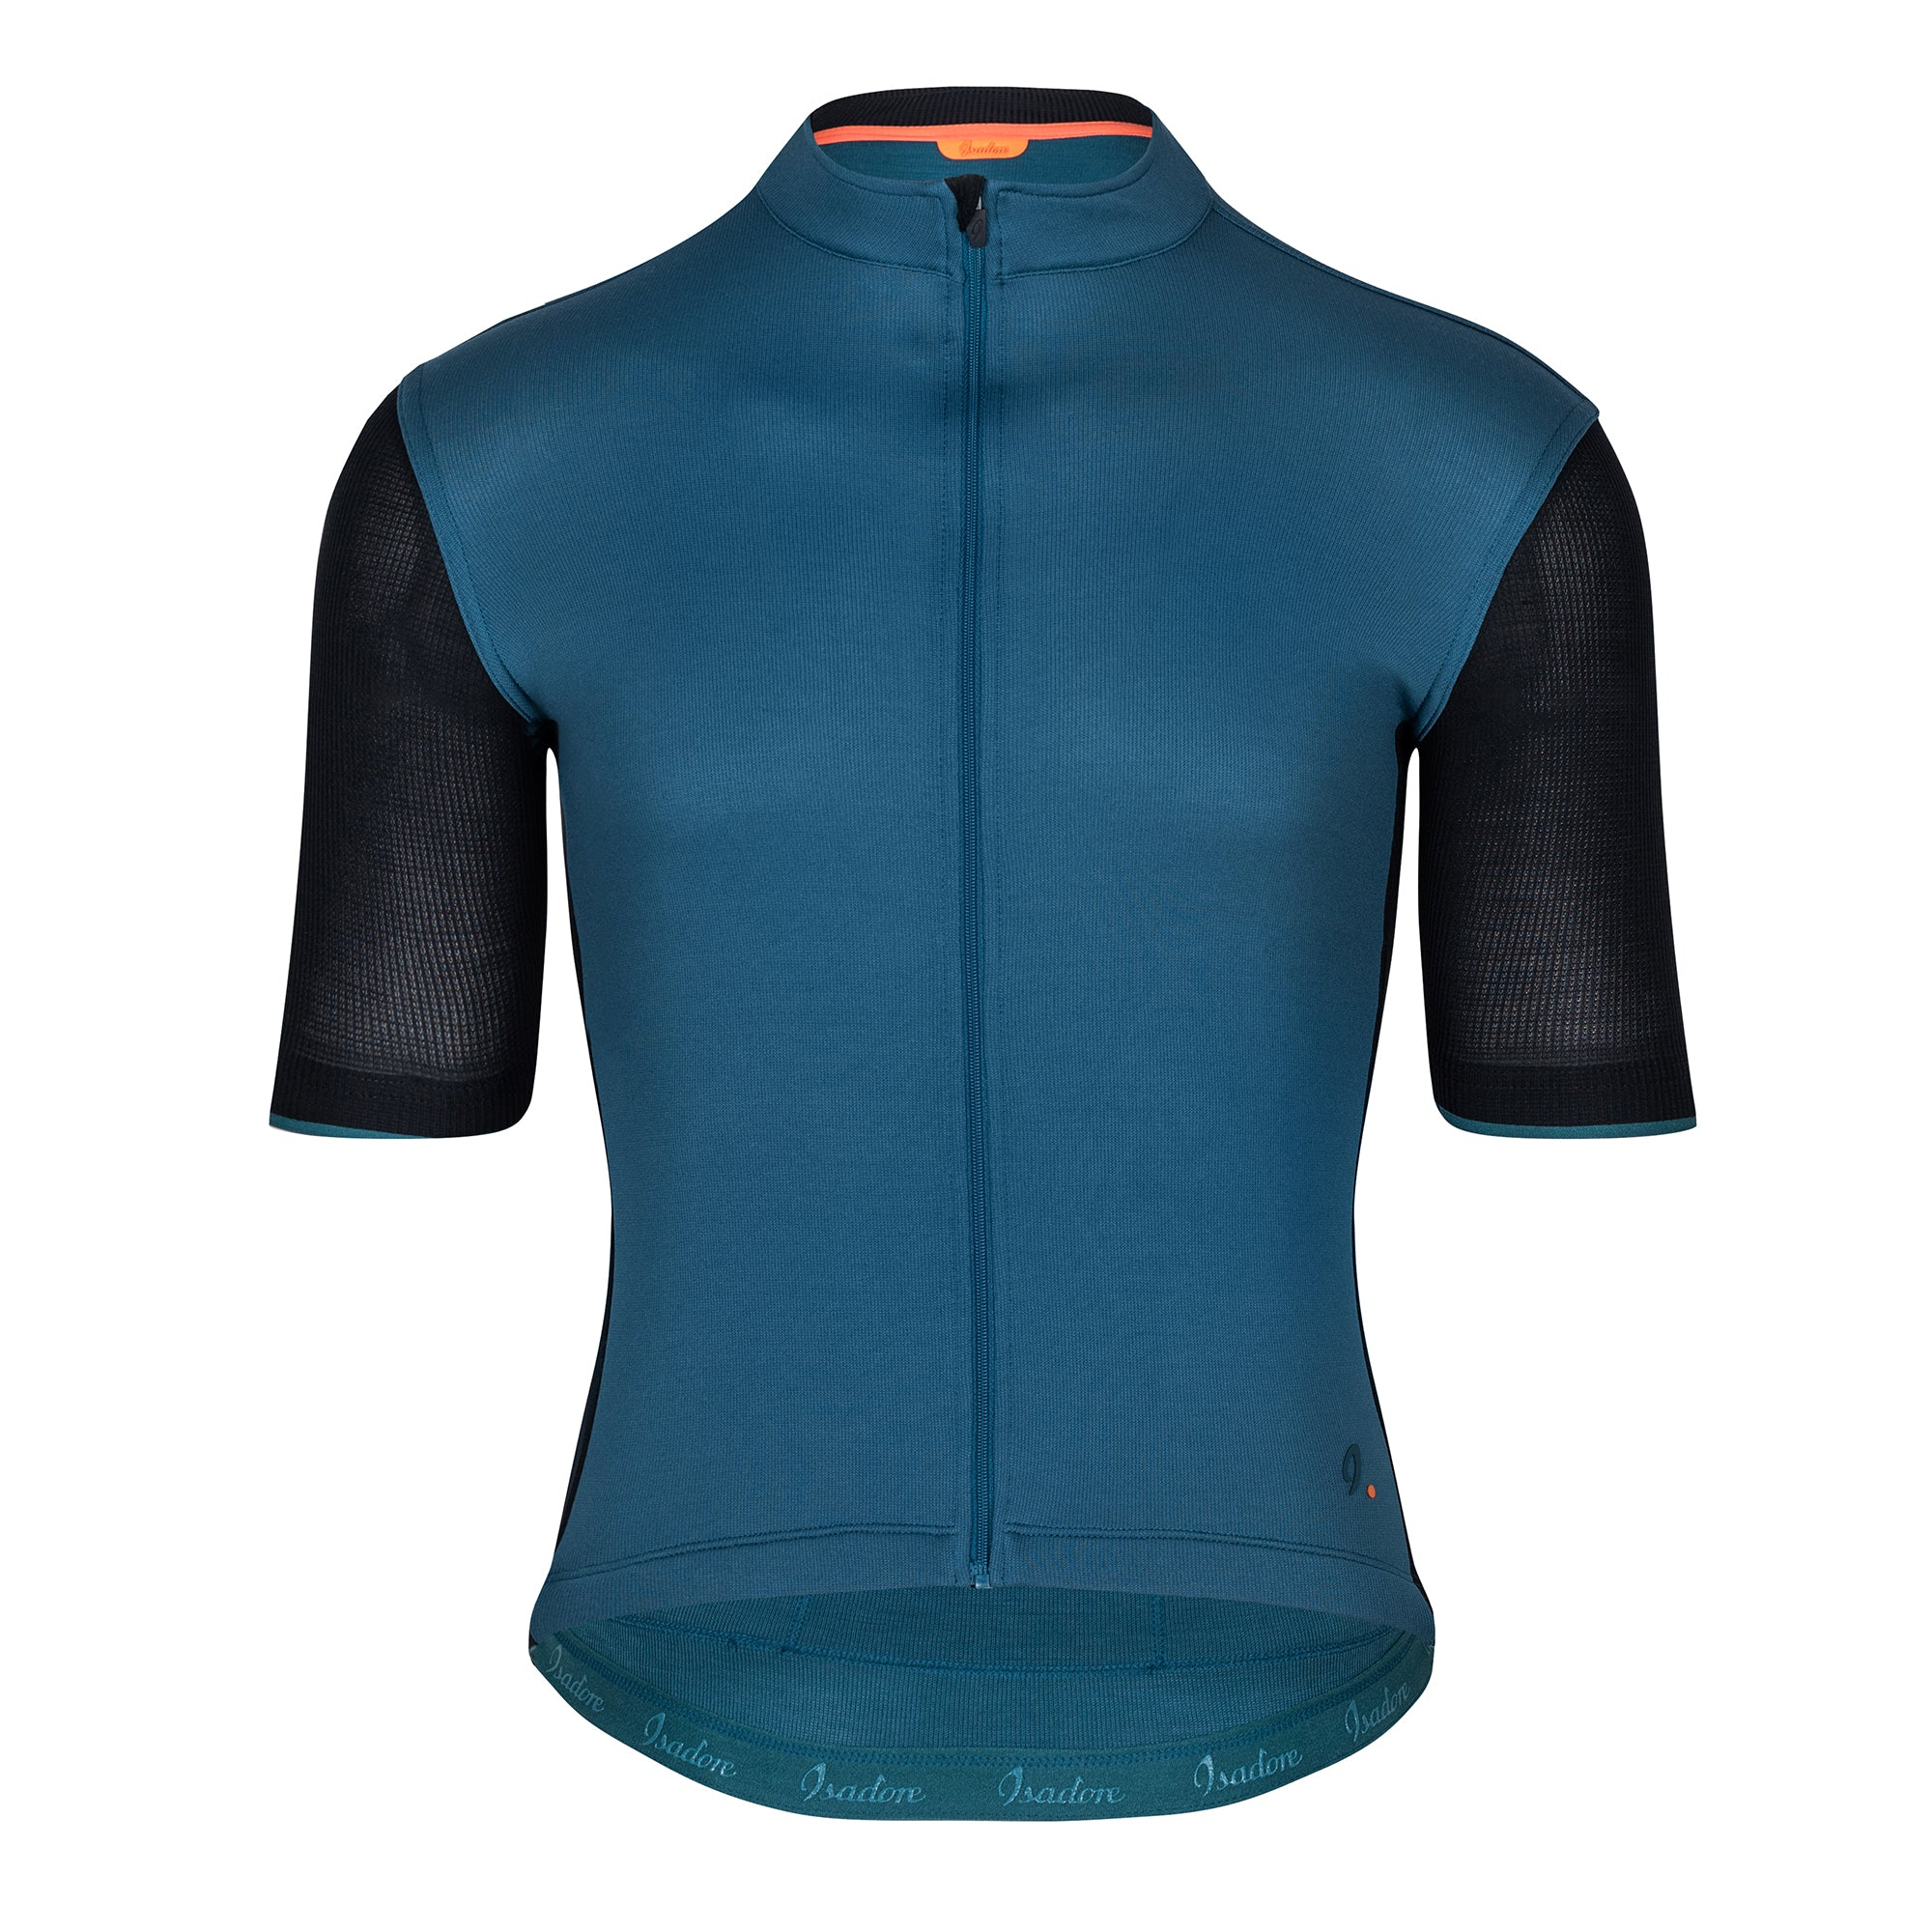 Signature Cycling Jersey - Atlantic Blue/Black